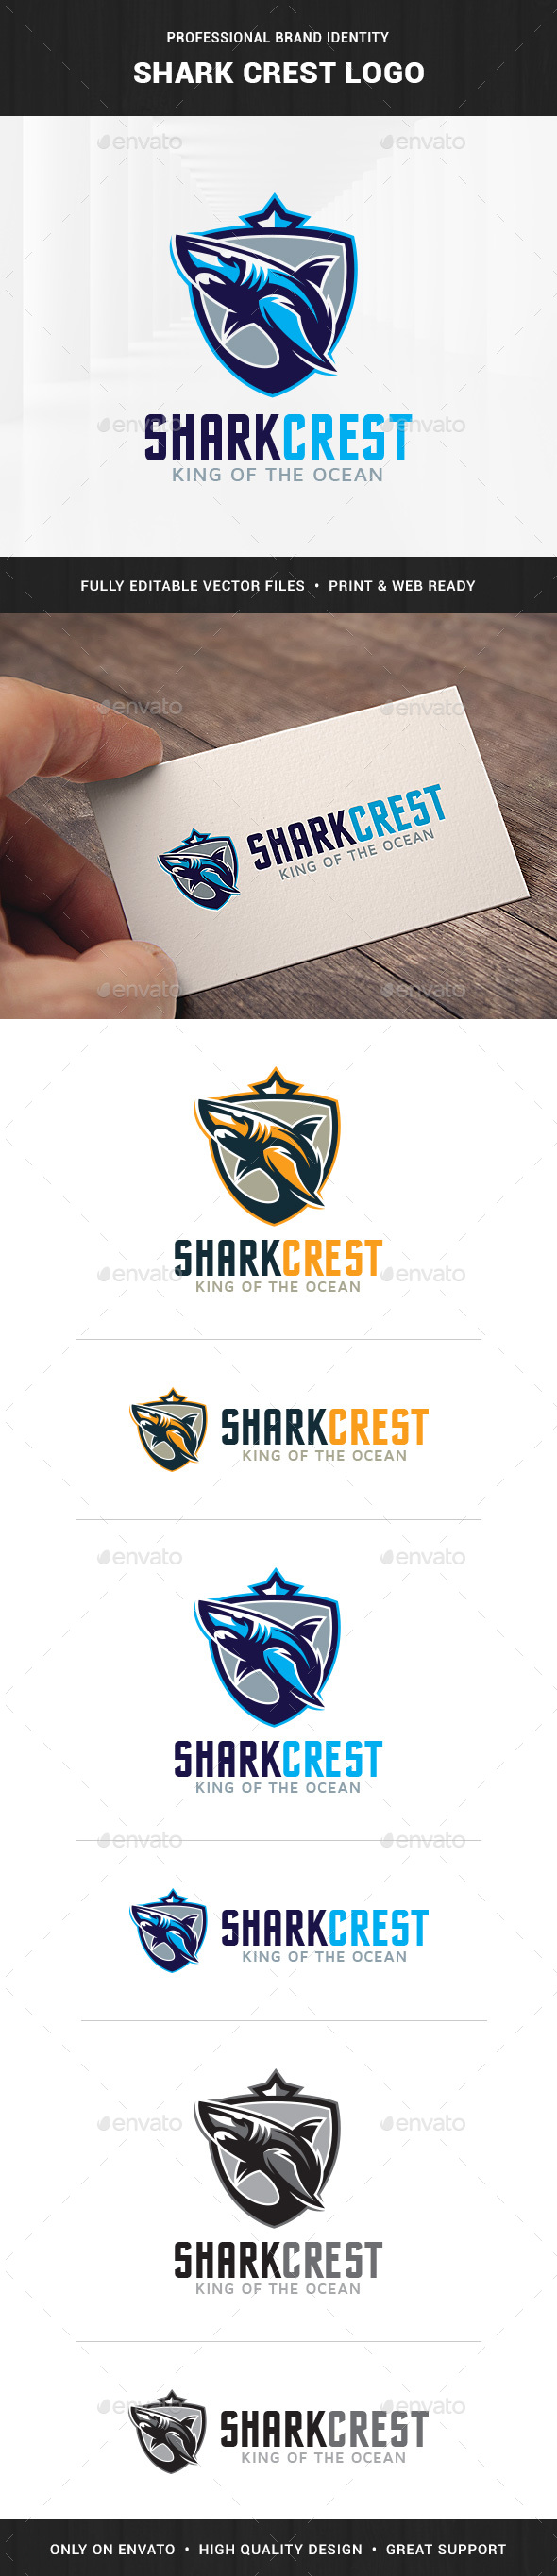 Shark Crest Logo Template - Animals Logo Templates